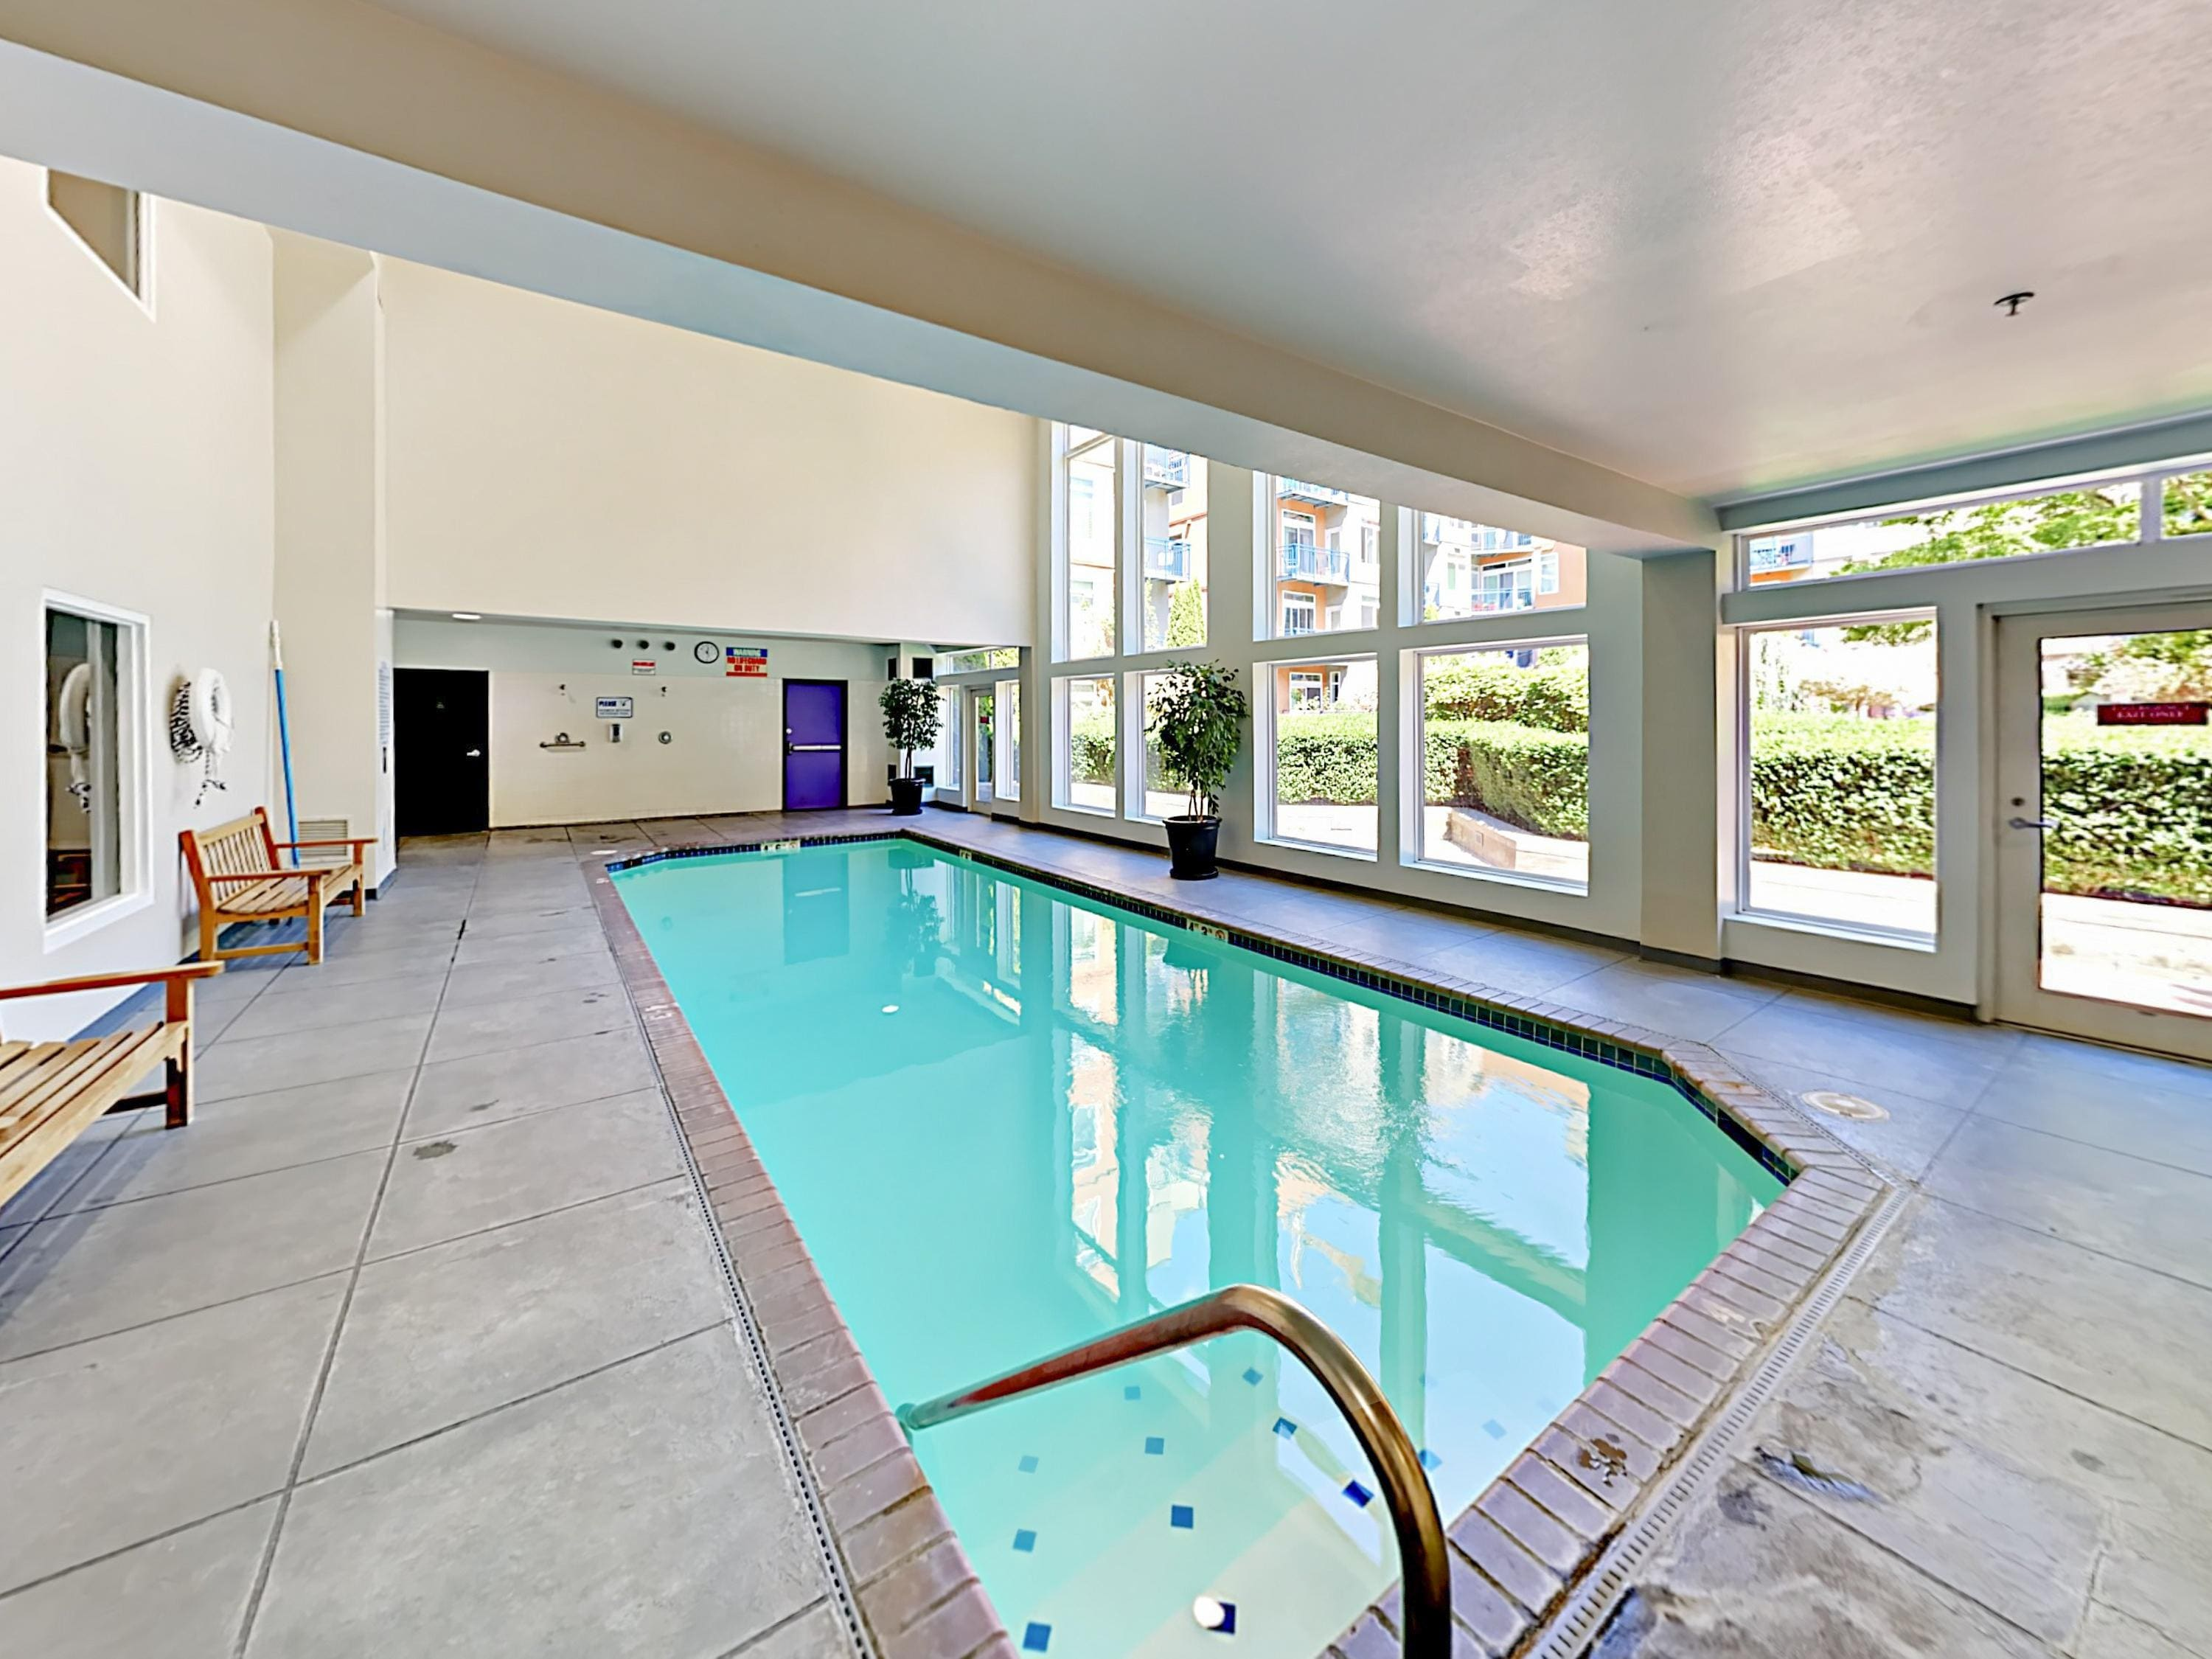 Modern 1BR Condo w/ Pool, Spa & Rooftop Deck